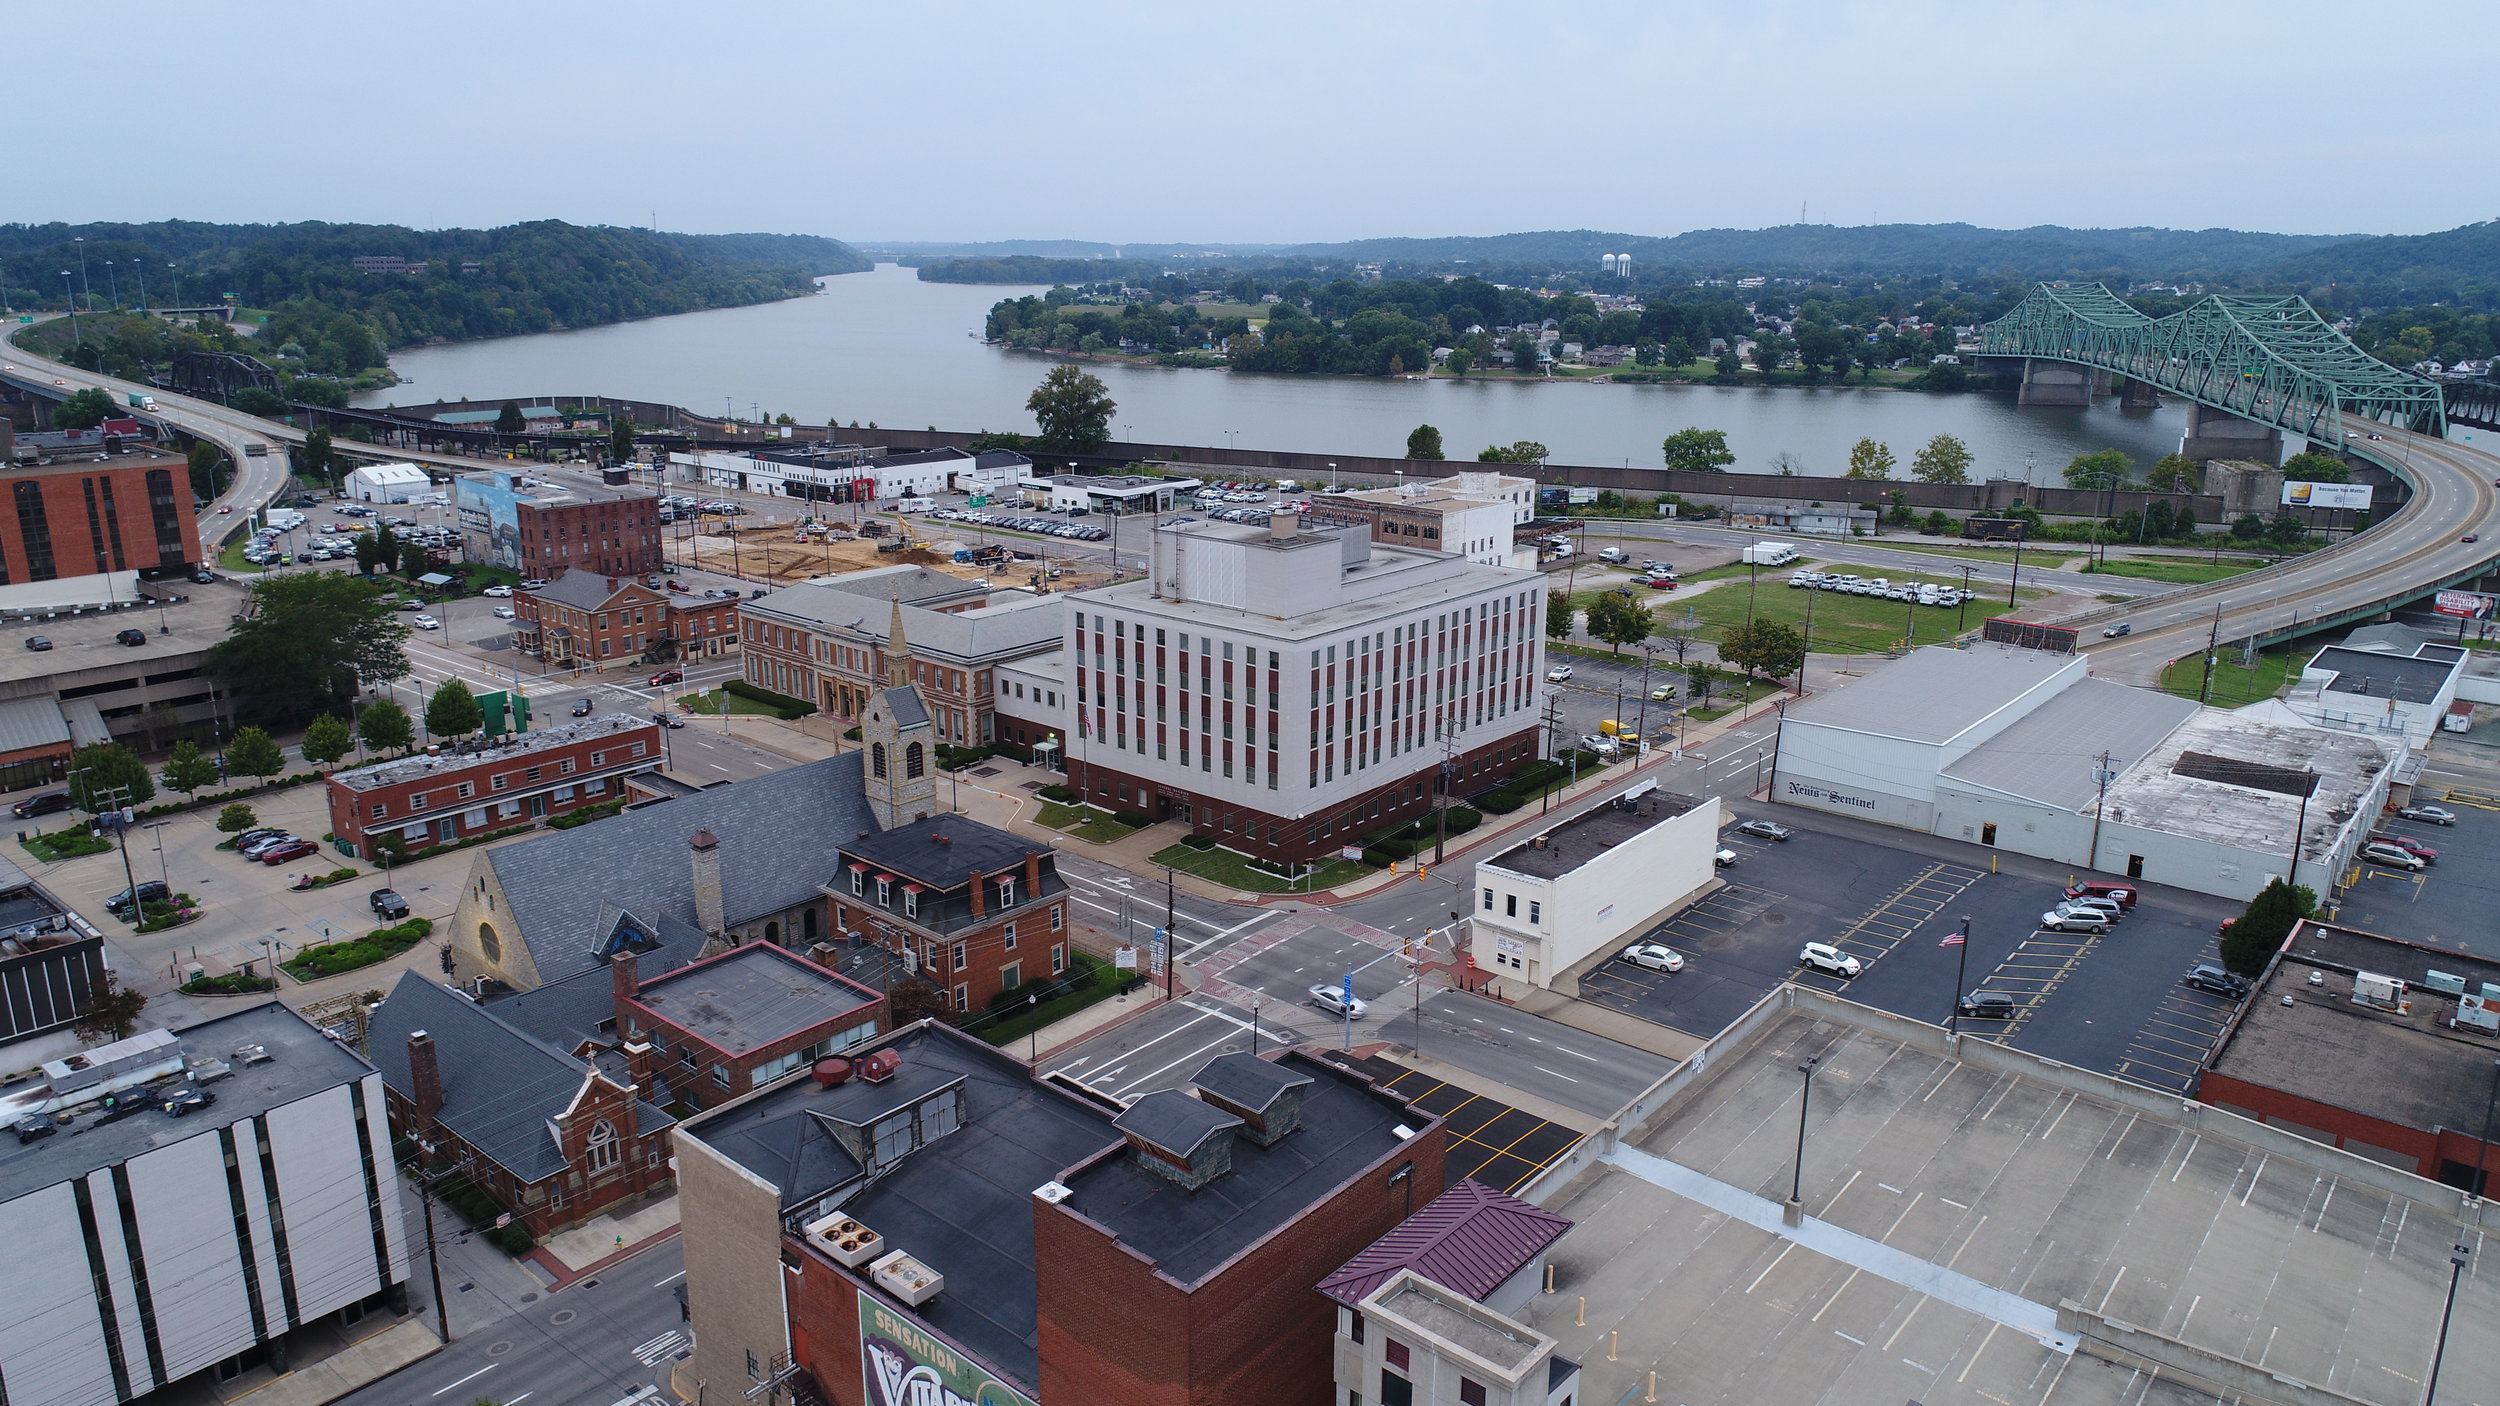 View of downtown Parkersburg, WV